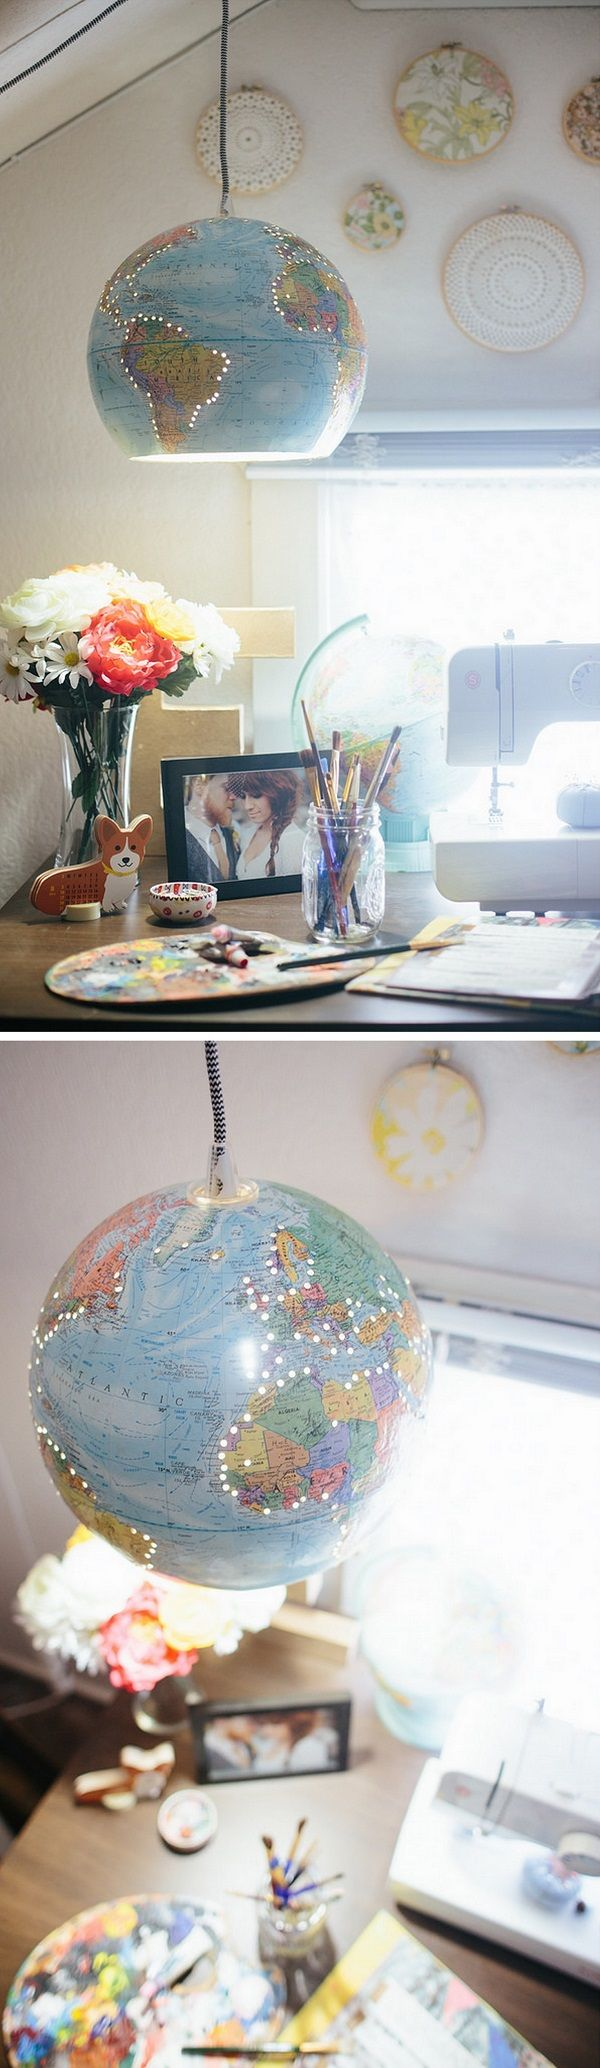 Check out the tutorial how to make this cute #DIY globe chandelier #homedecor #upcycle @istandarddesign